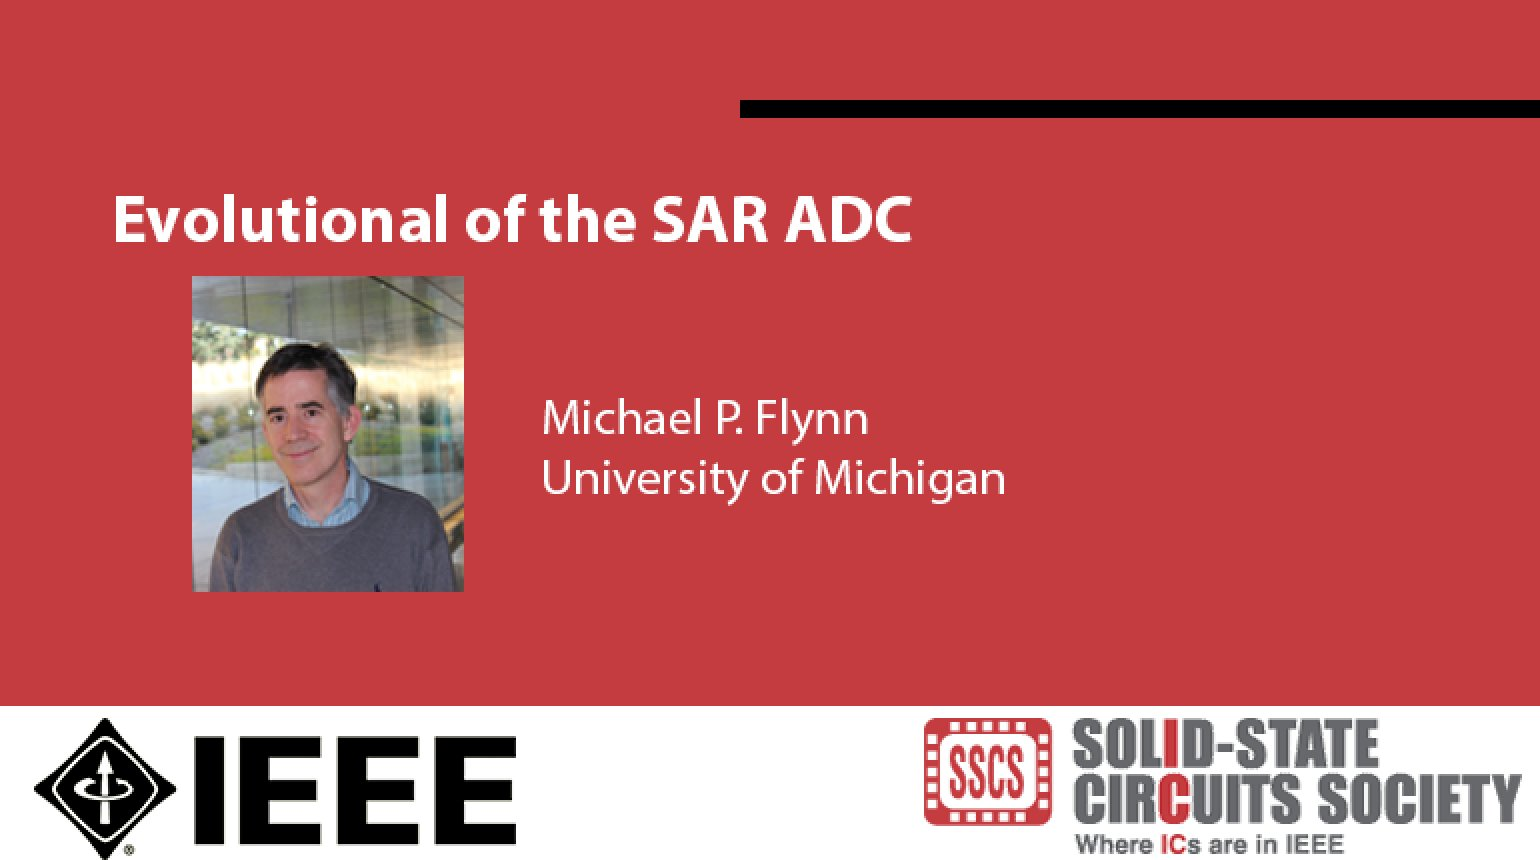 Evolutional of the SAR ADC Video